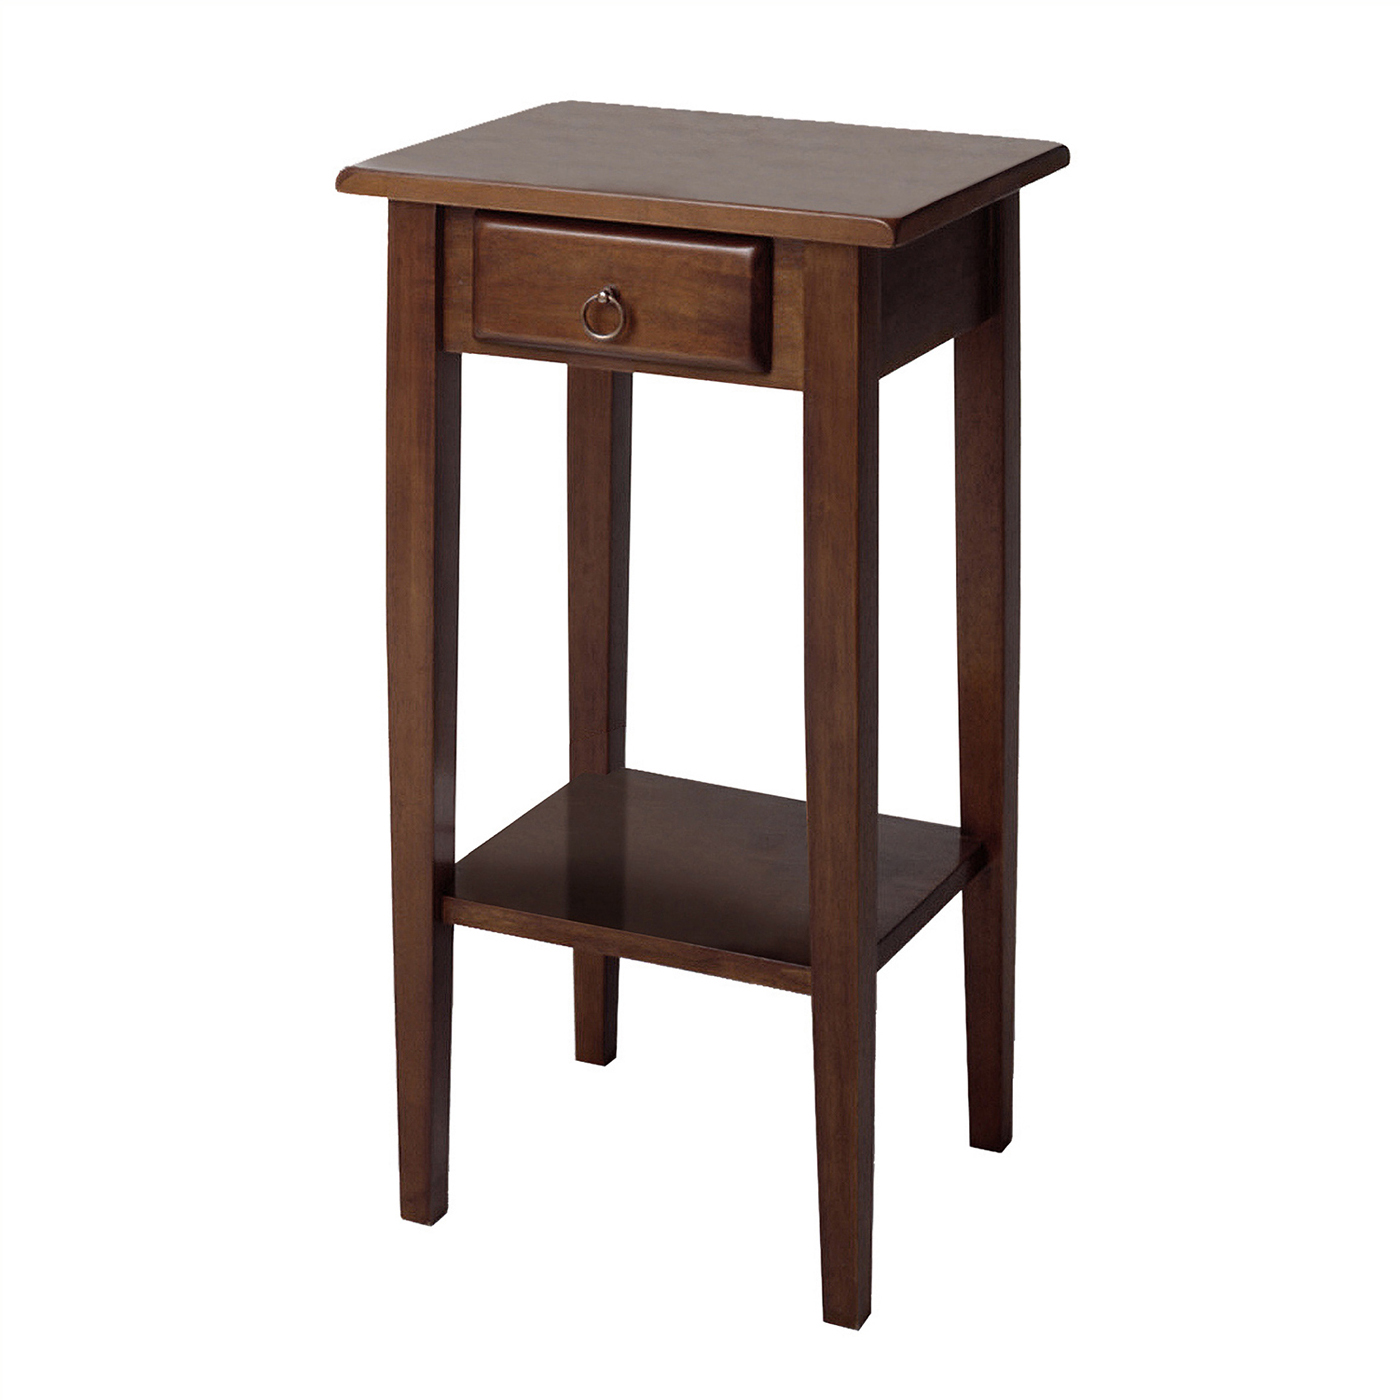 winsome wood regalia plant stand accent table with drawer new furniture toronto view larger threshold fretwork office coffee and chairs cool legs ikea outdoor cushions farmhouse